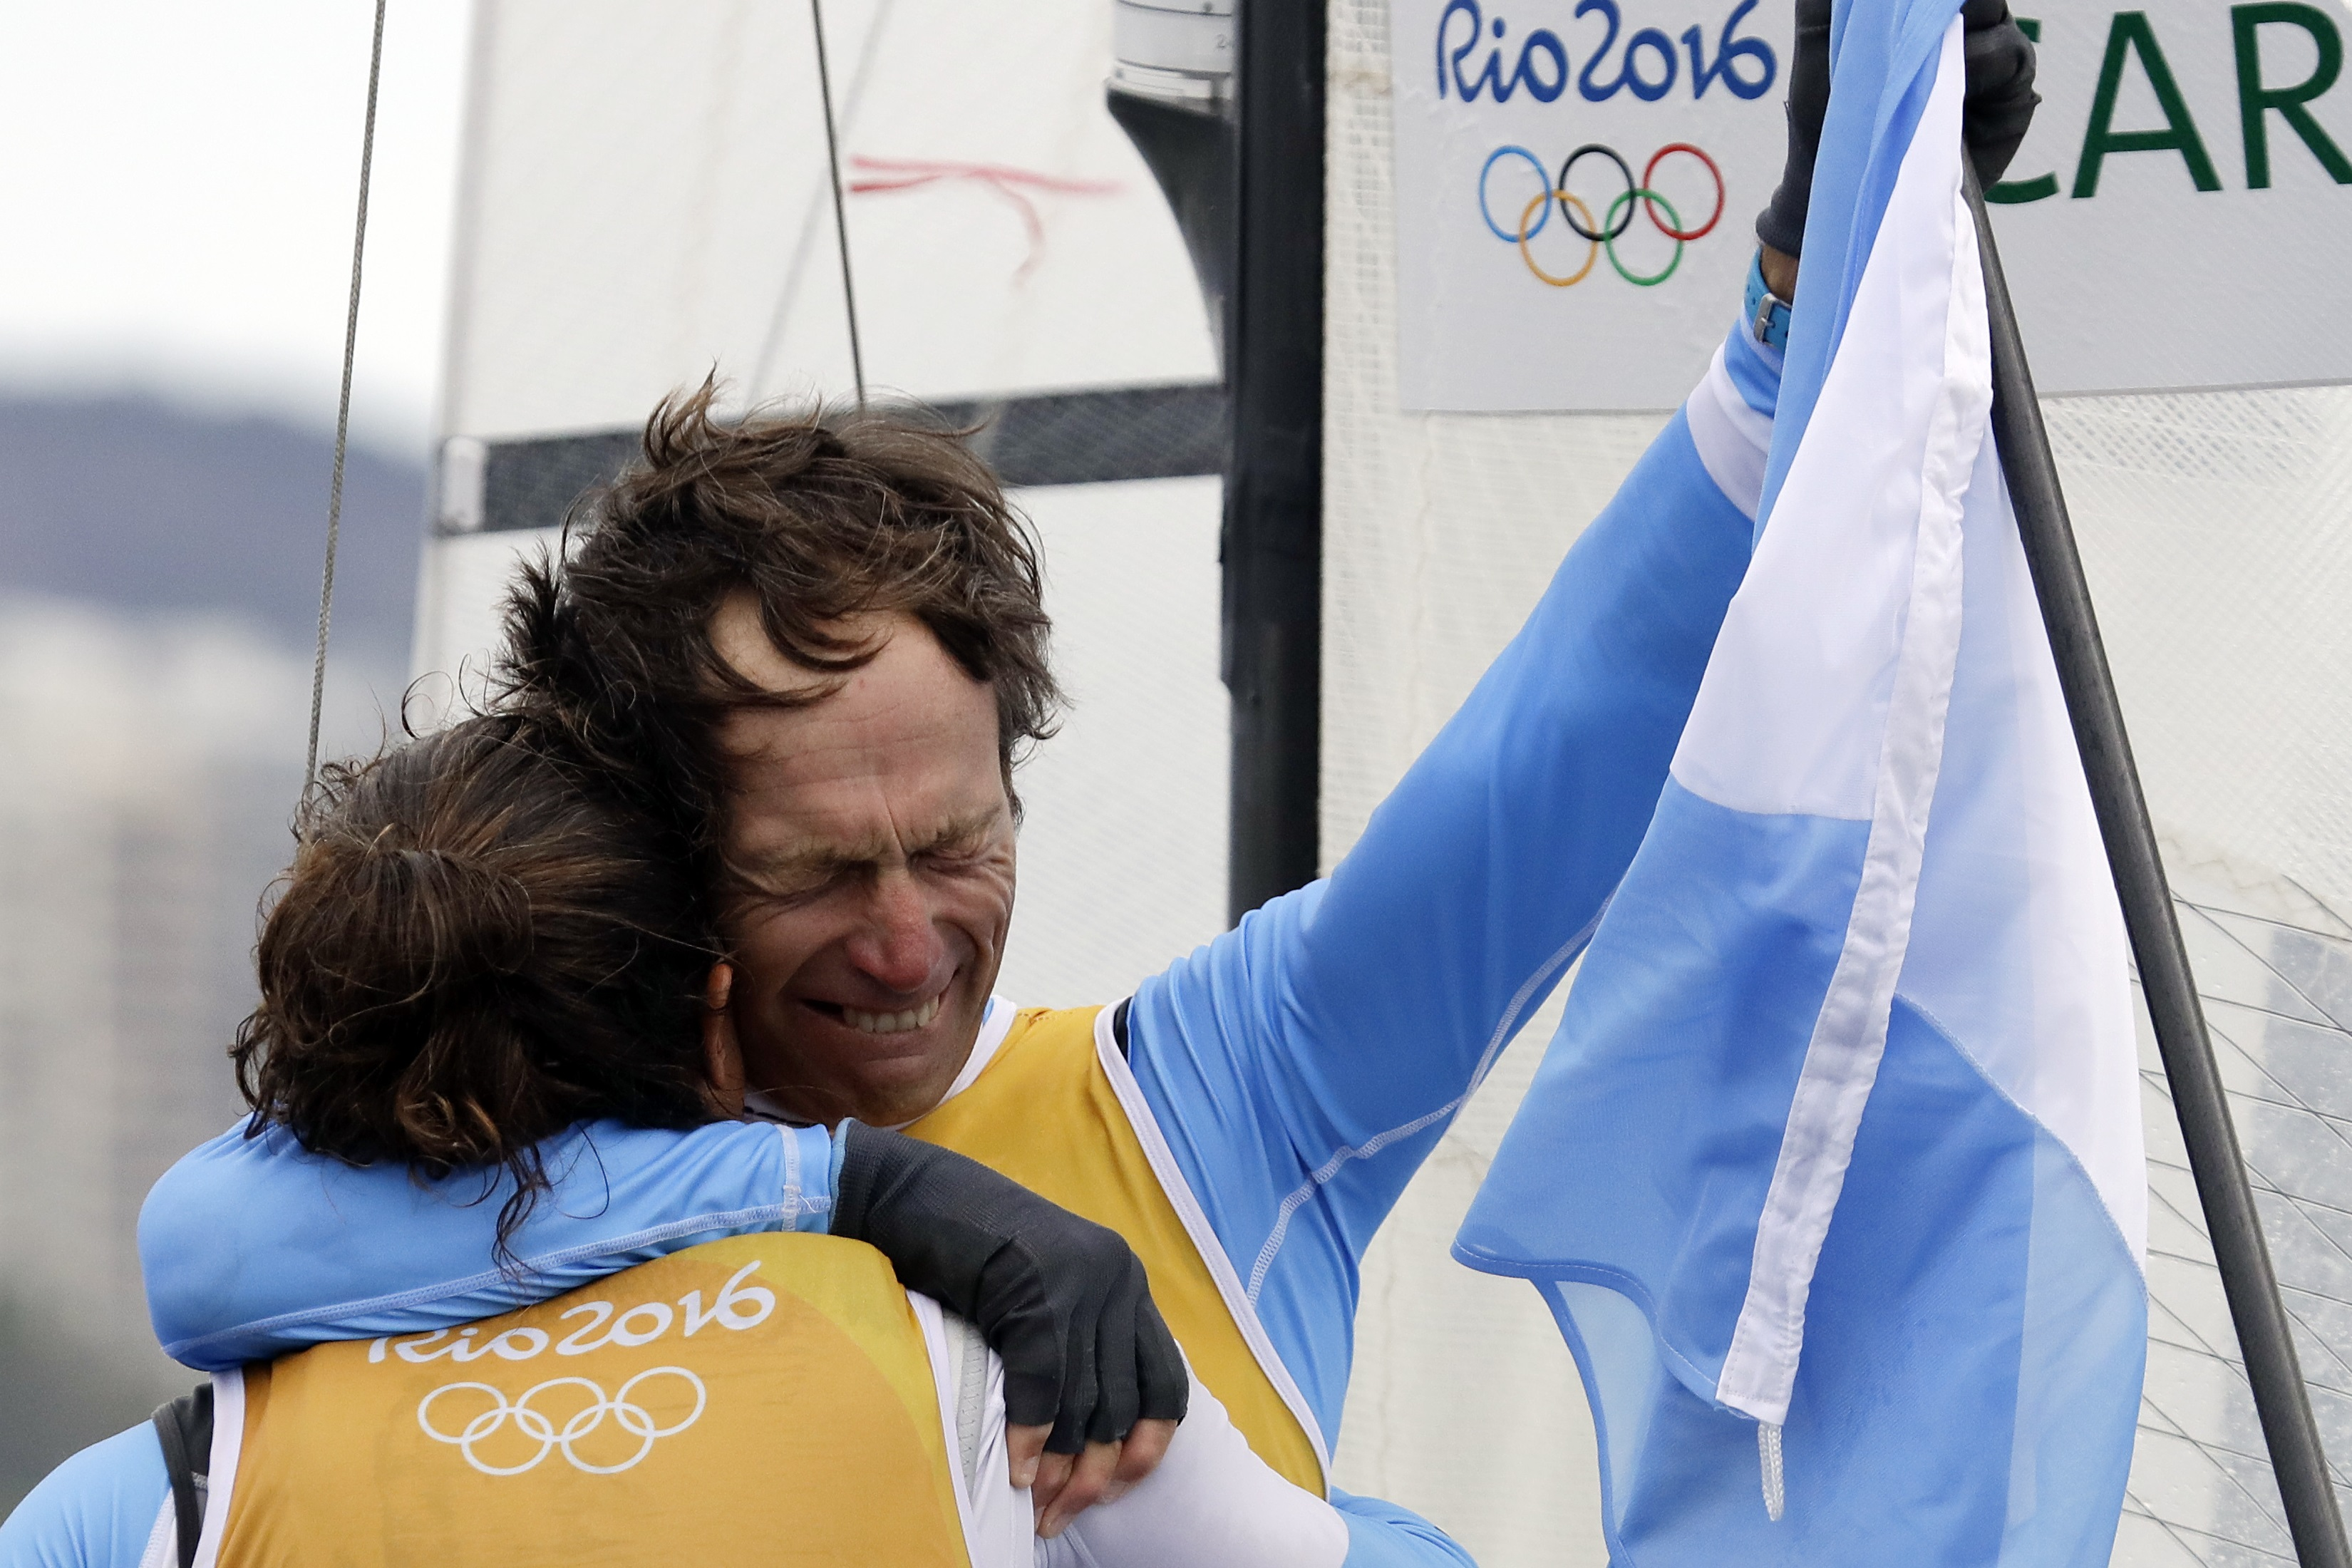 First placed Argentina's Santiago Lange, right, hugs Cecilia Carranza Saroli at the end of the Nacra 17 Mixed Medal Race during the 2016 Summer Olympics in Rio de Janeiro, Brazil, Tuesday, Aug. 16, 2016. (AP Photo/Gregorio Borgia)